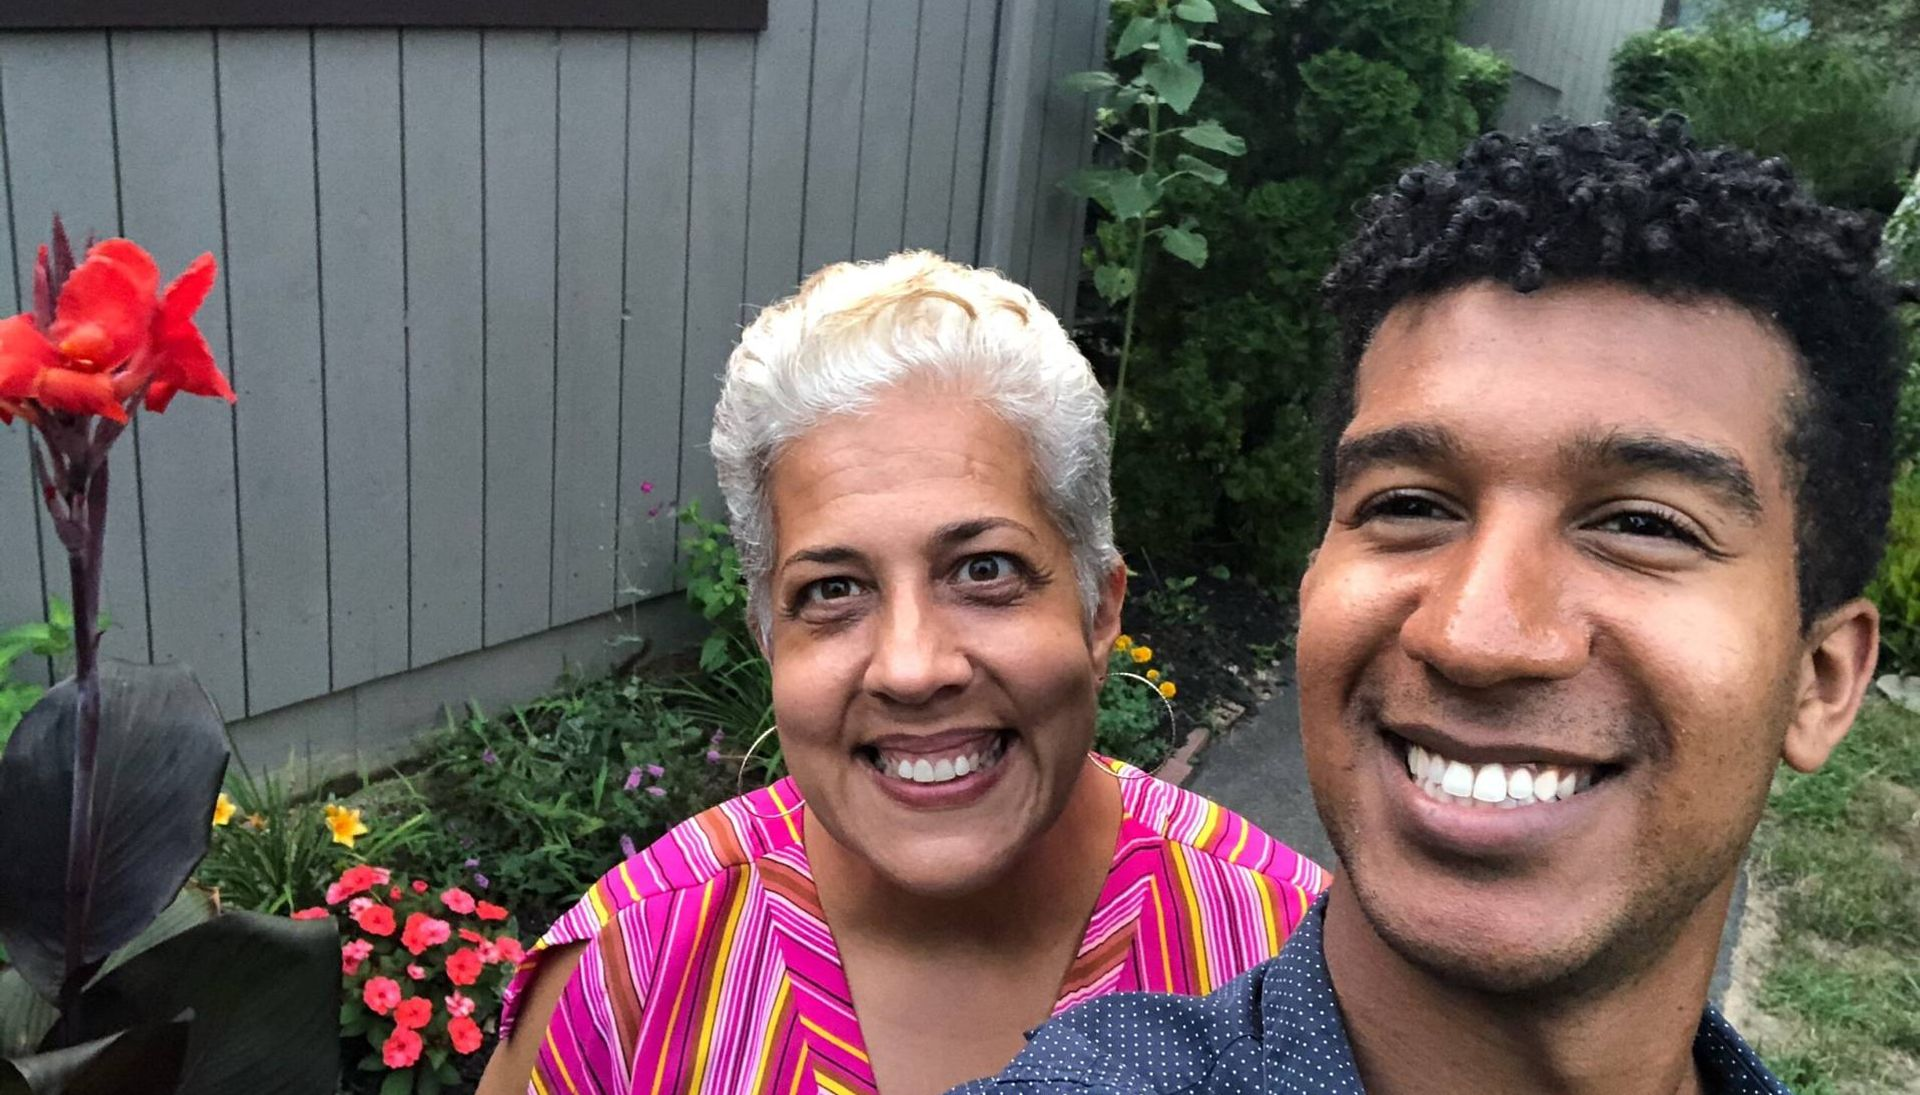 A son and his mom take a selfie outside in their garden in summer